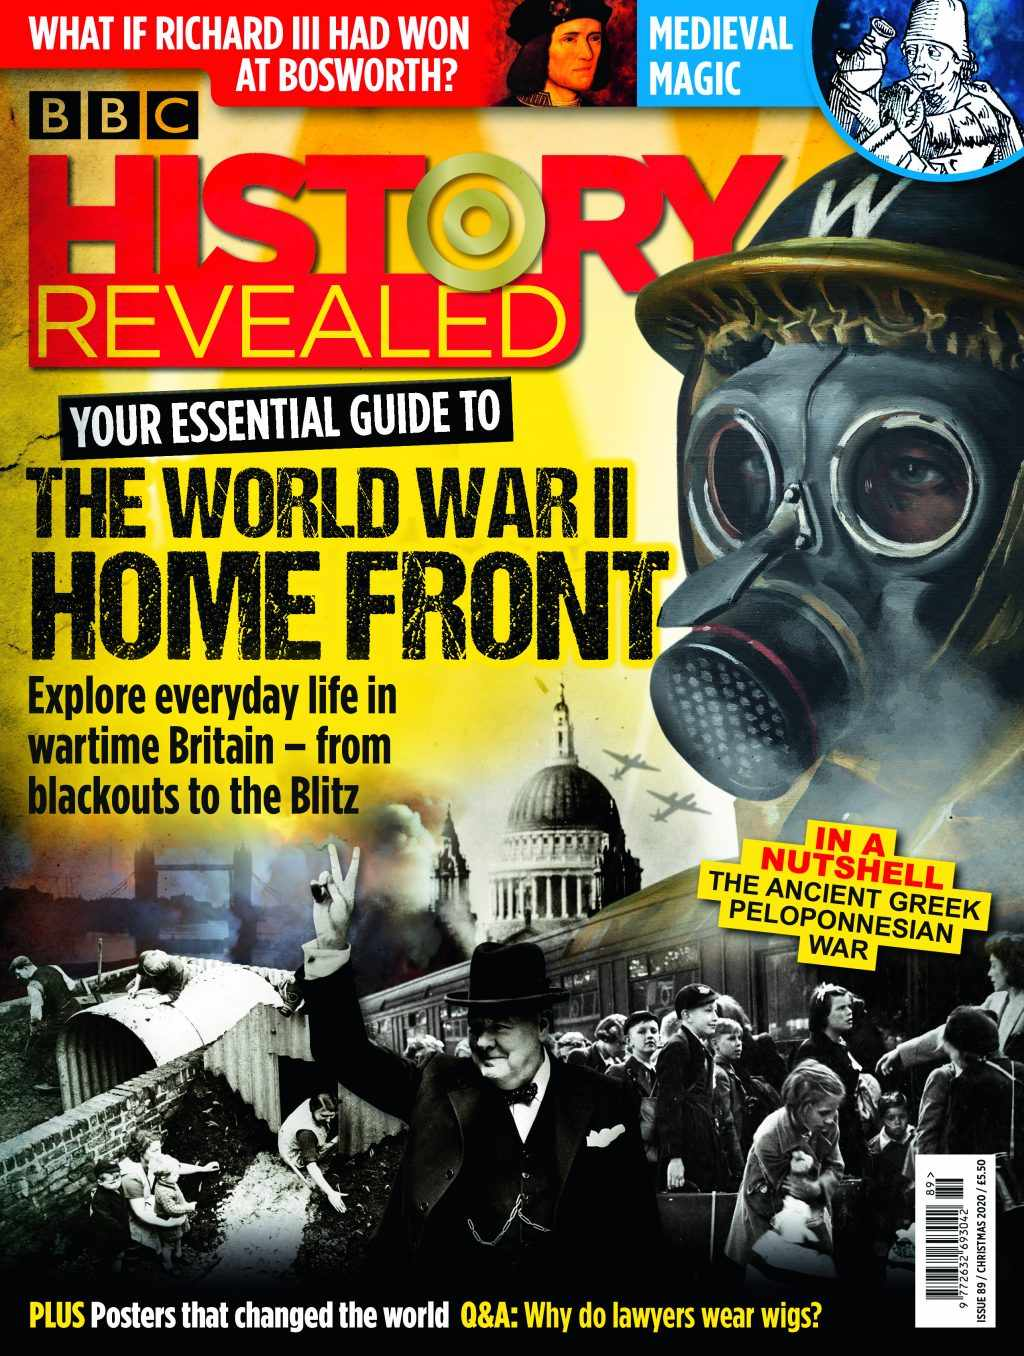 Christmas 2020 issue BBC History Revealed